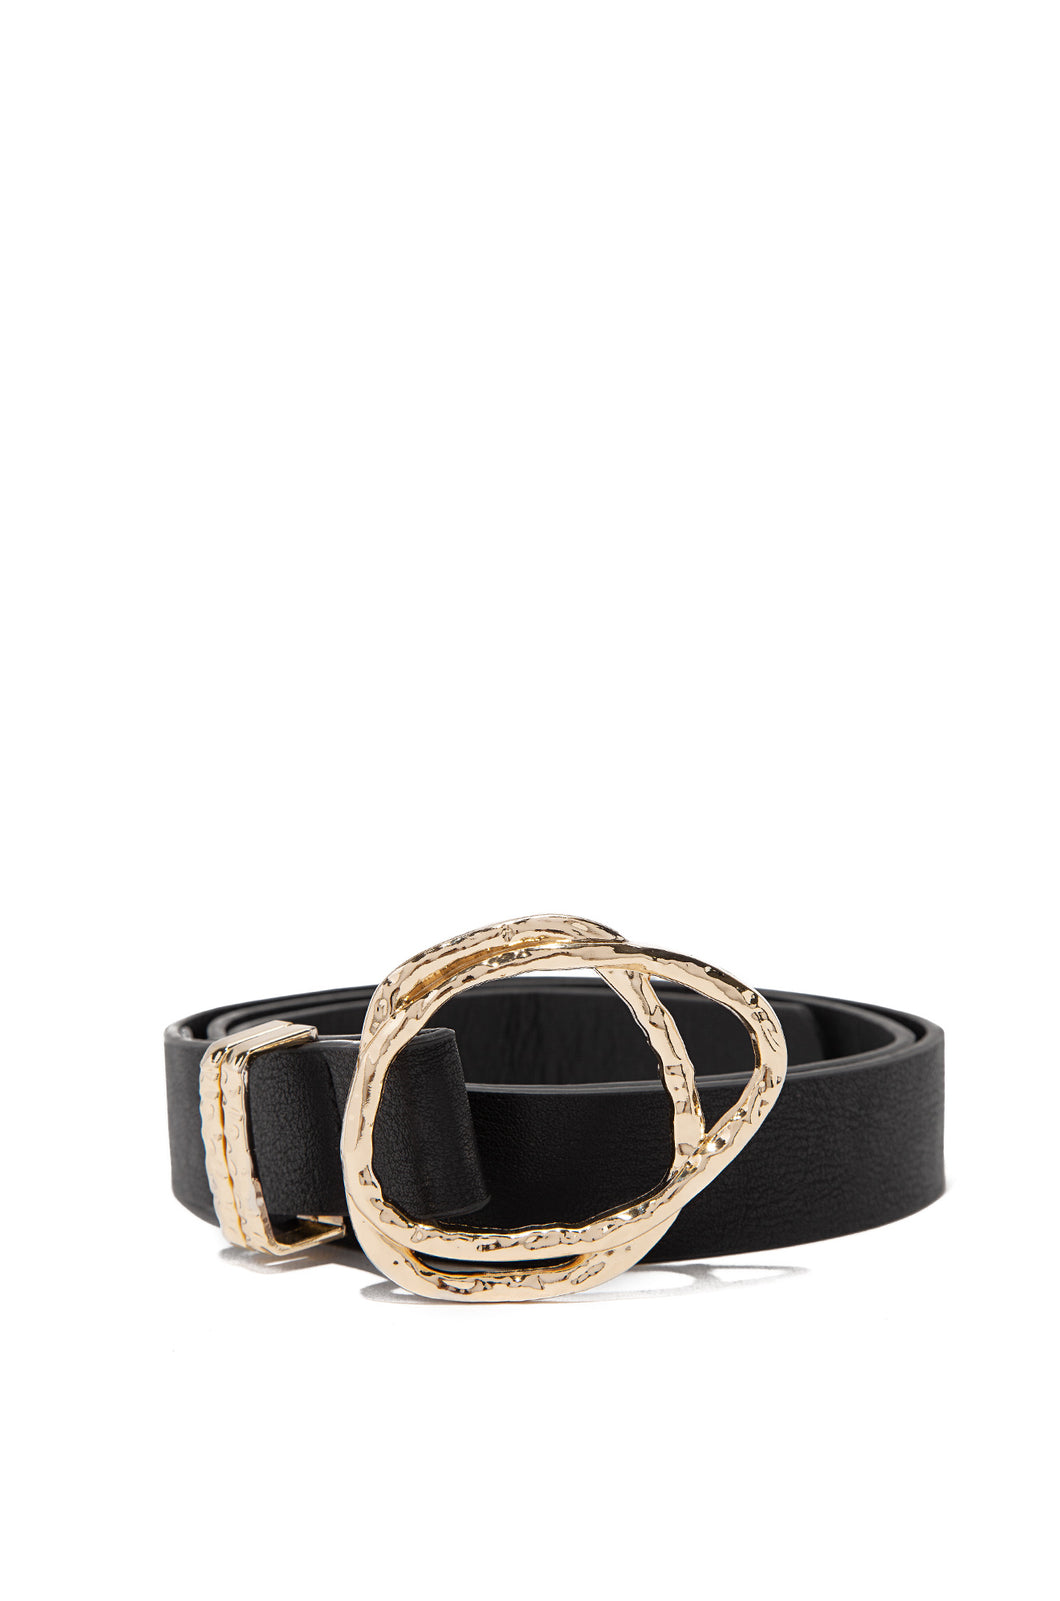 Music Lover Belt - Black